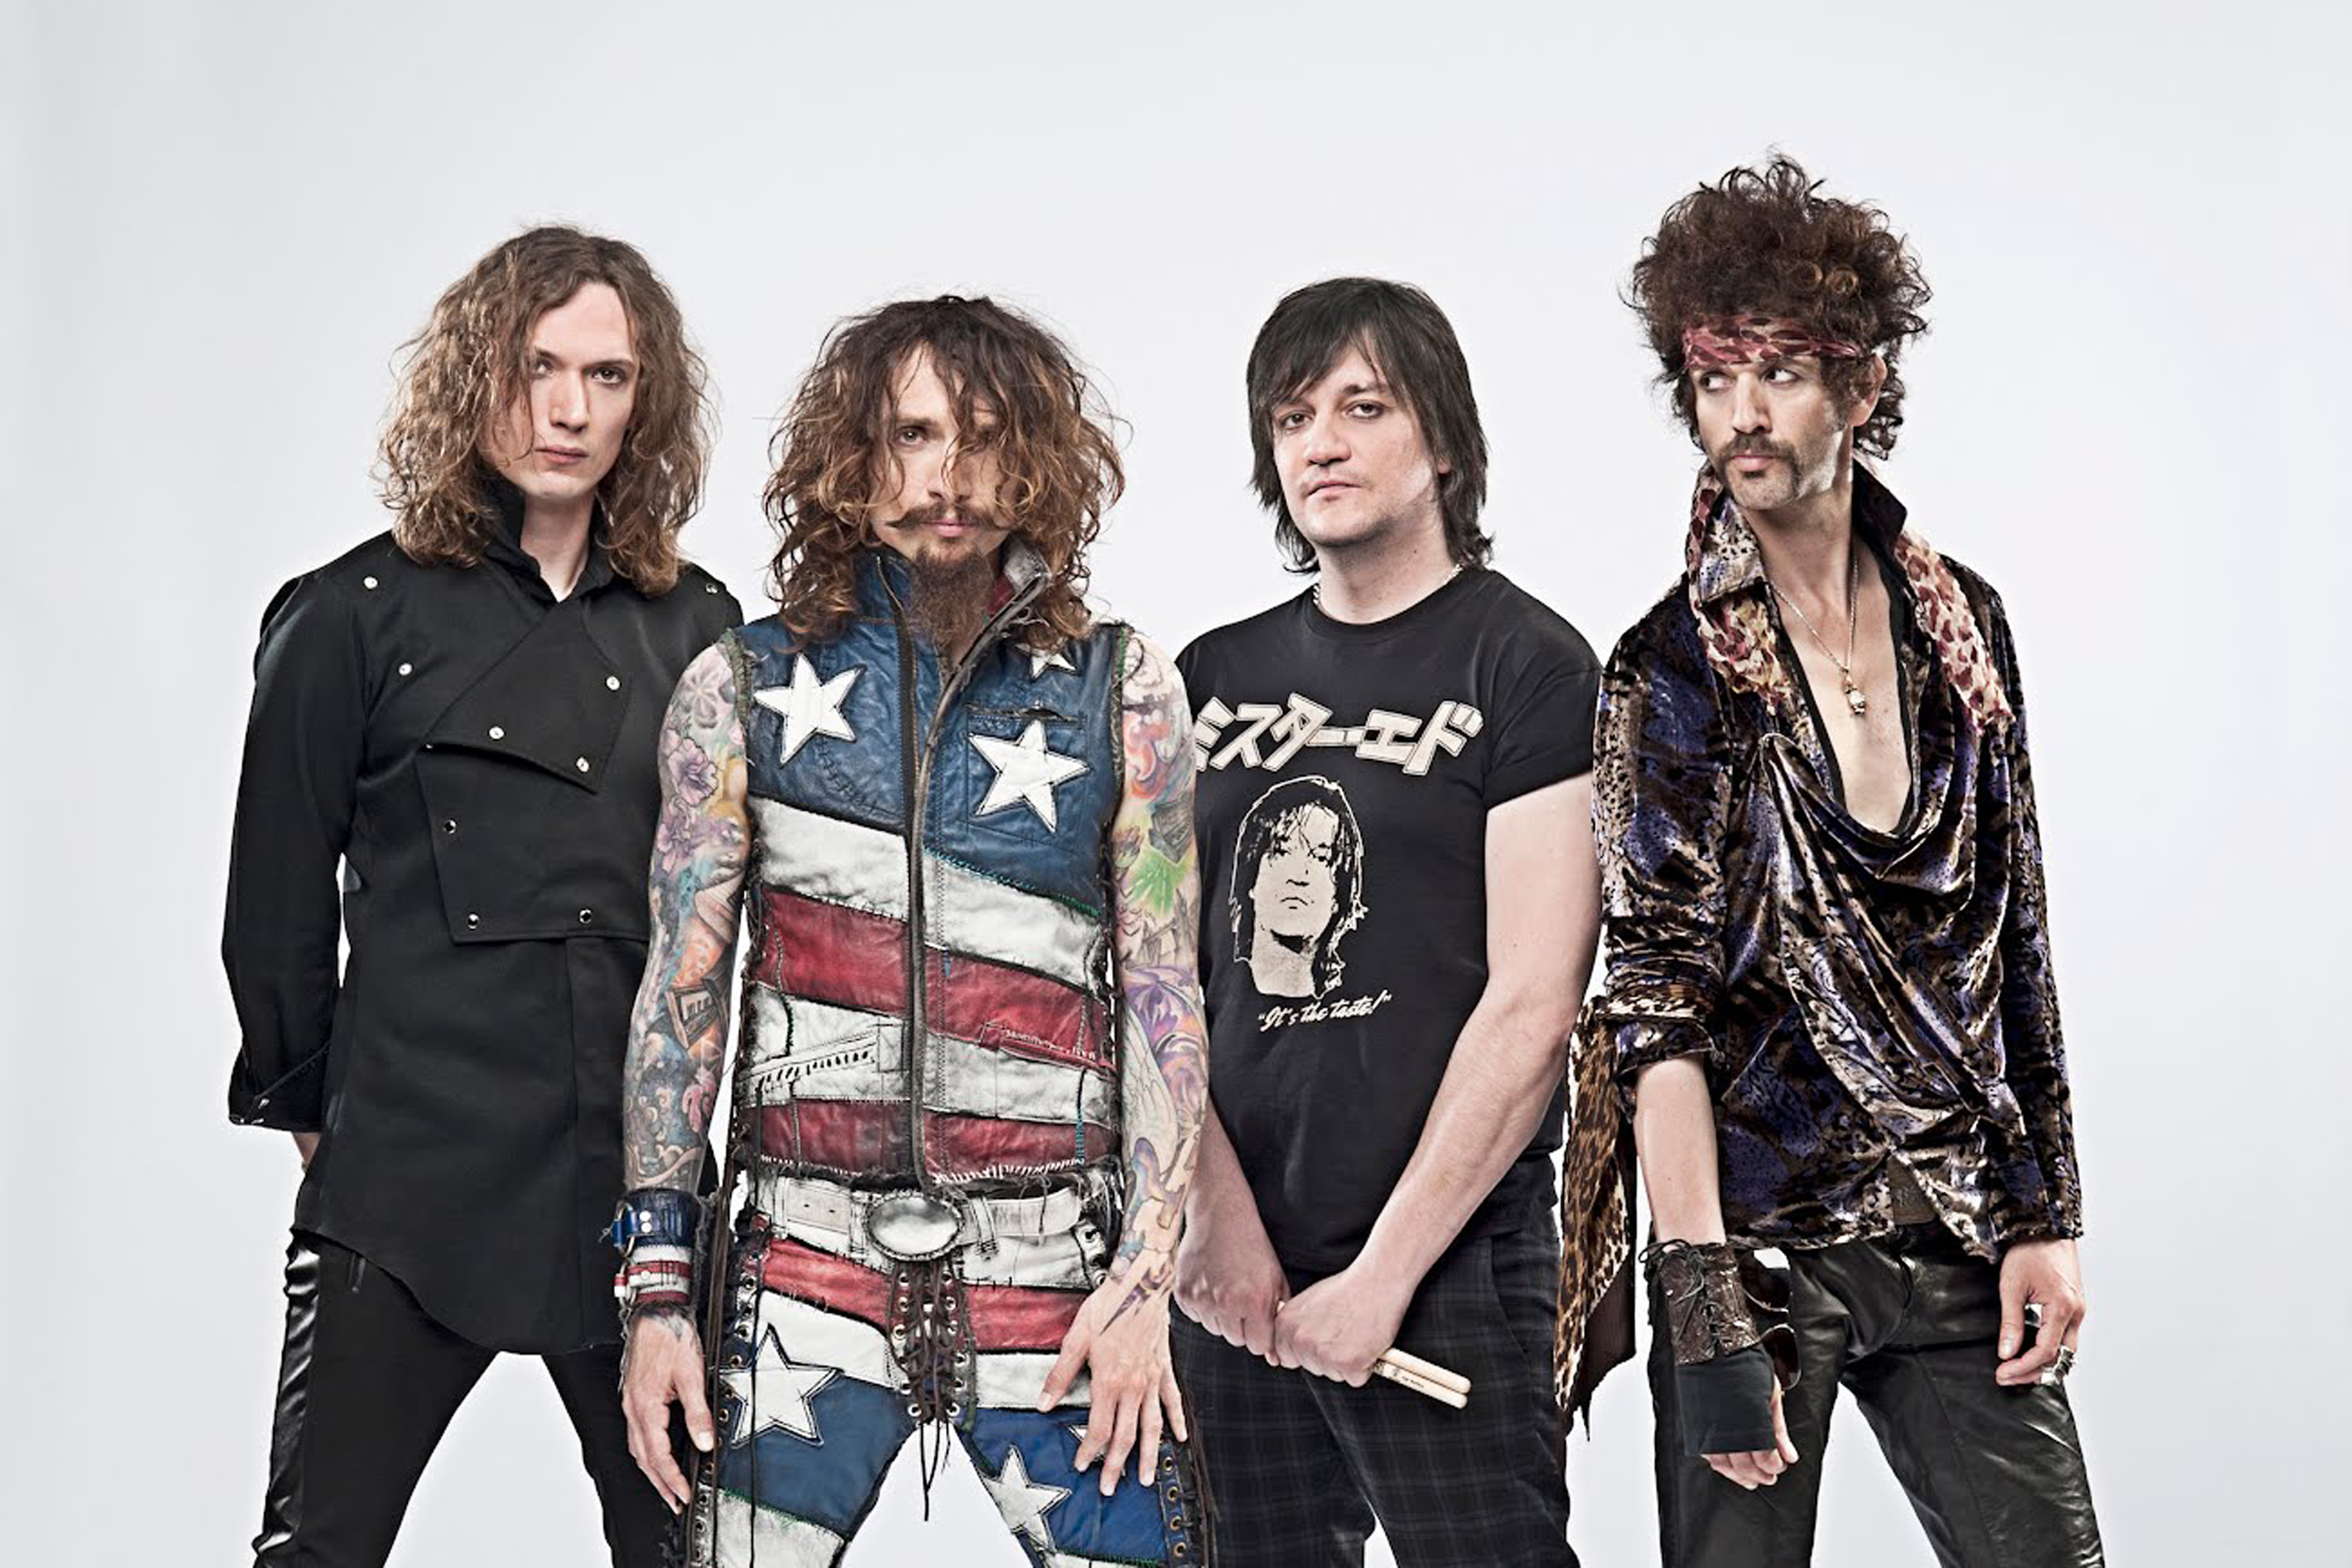 Konzert von The Darkness in Frankfurt am Main